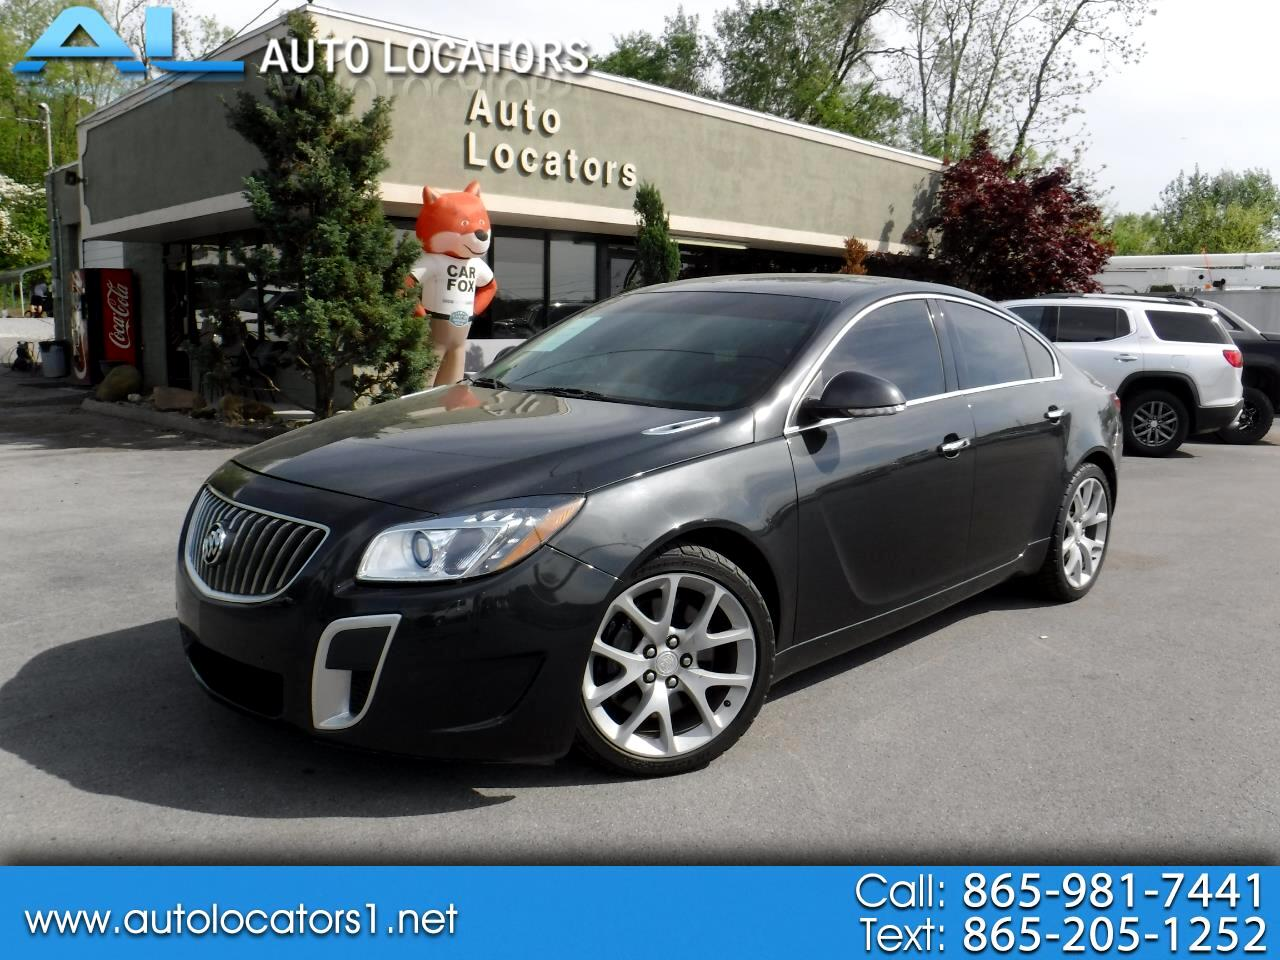 2012 Buick Regal 4dr Sdn GS